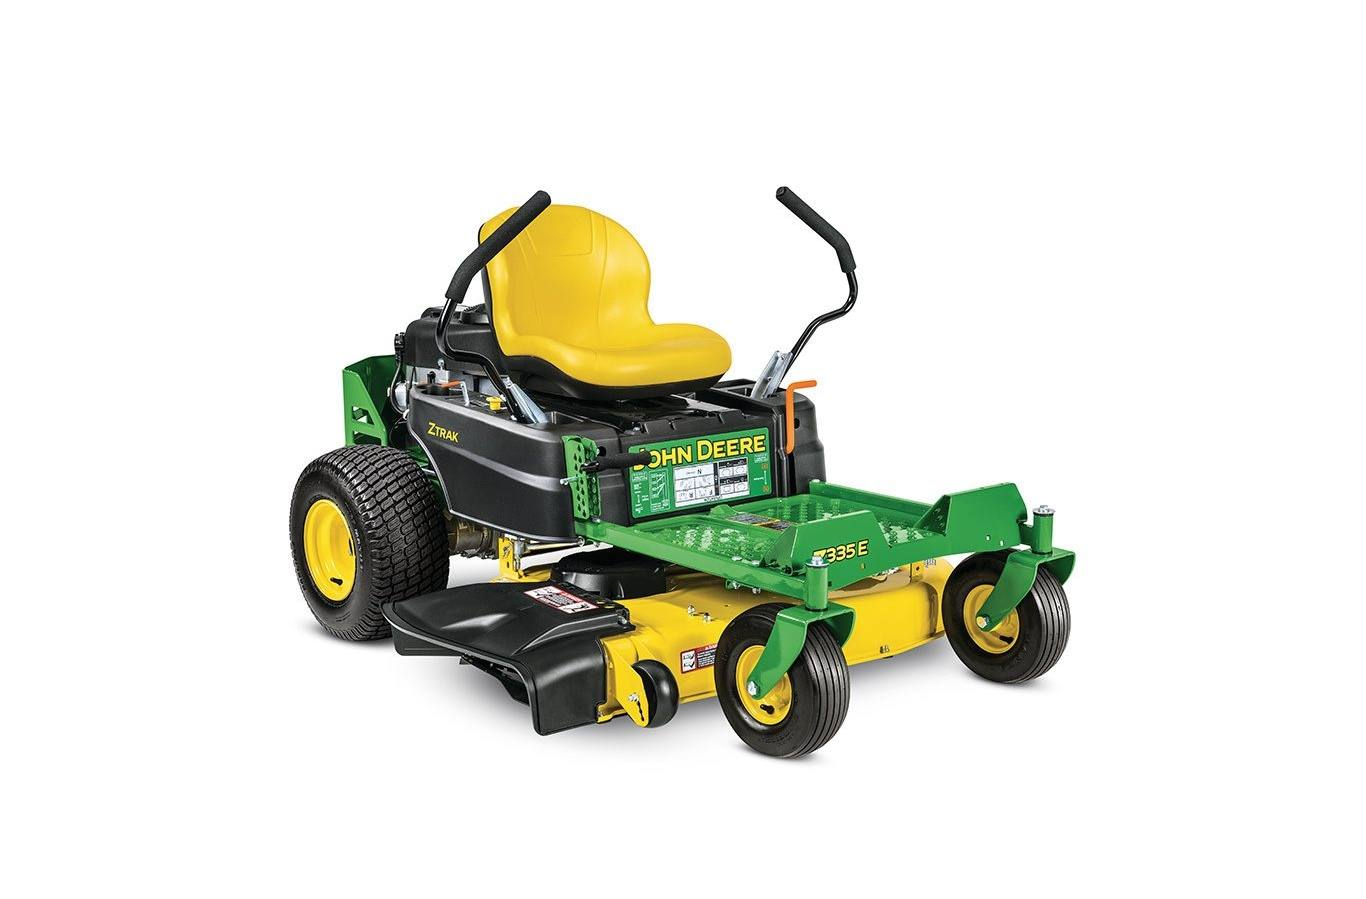 2019 John Deere Z335E with 42-inch Deck